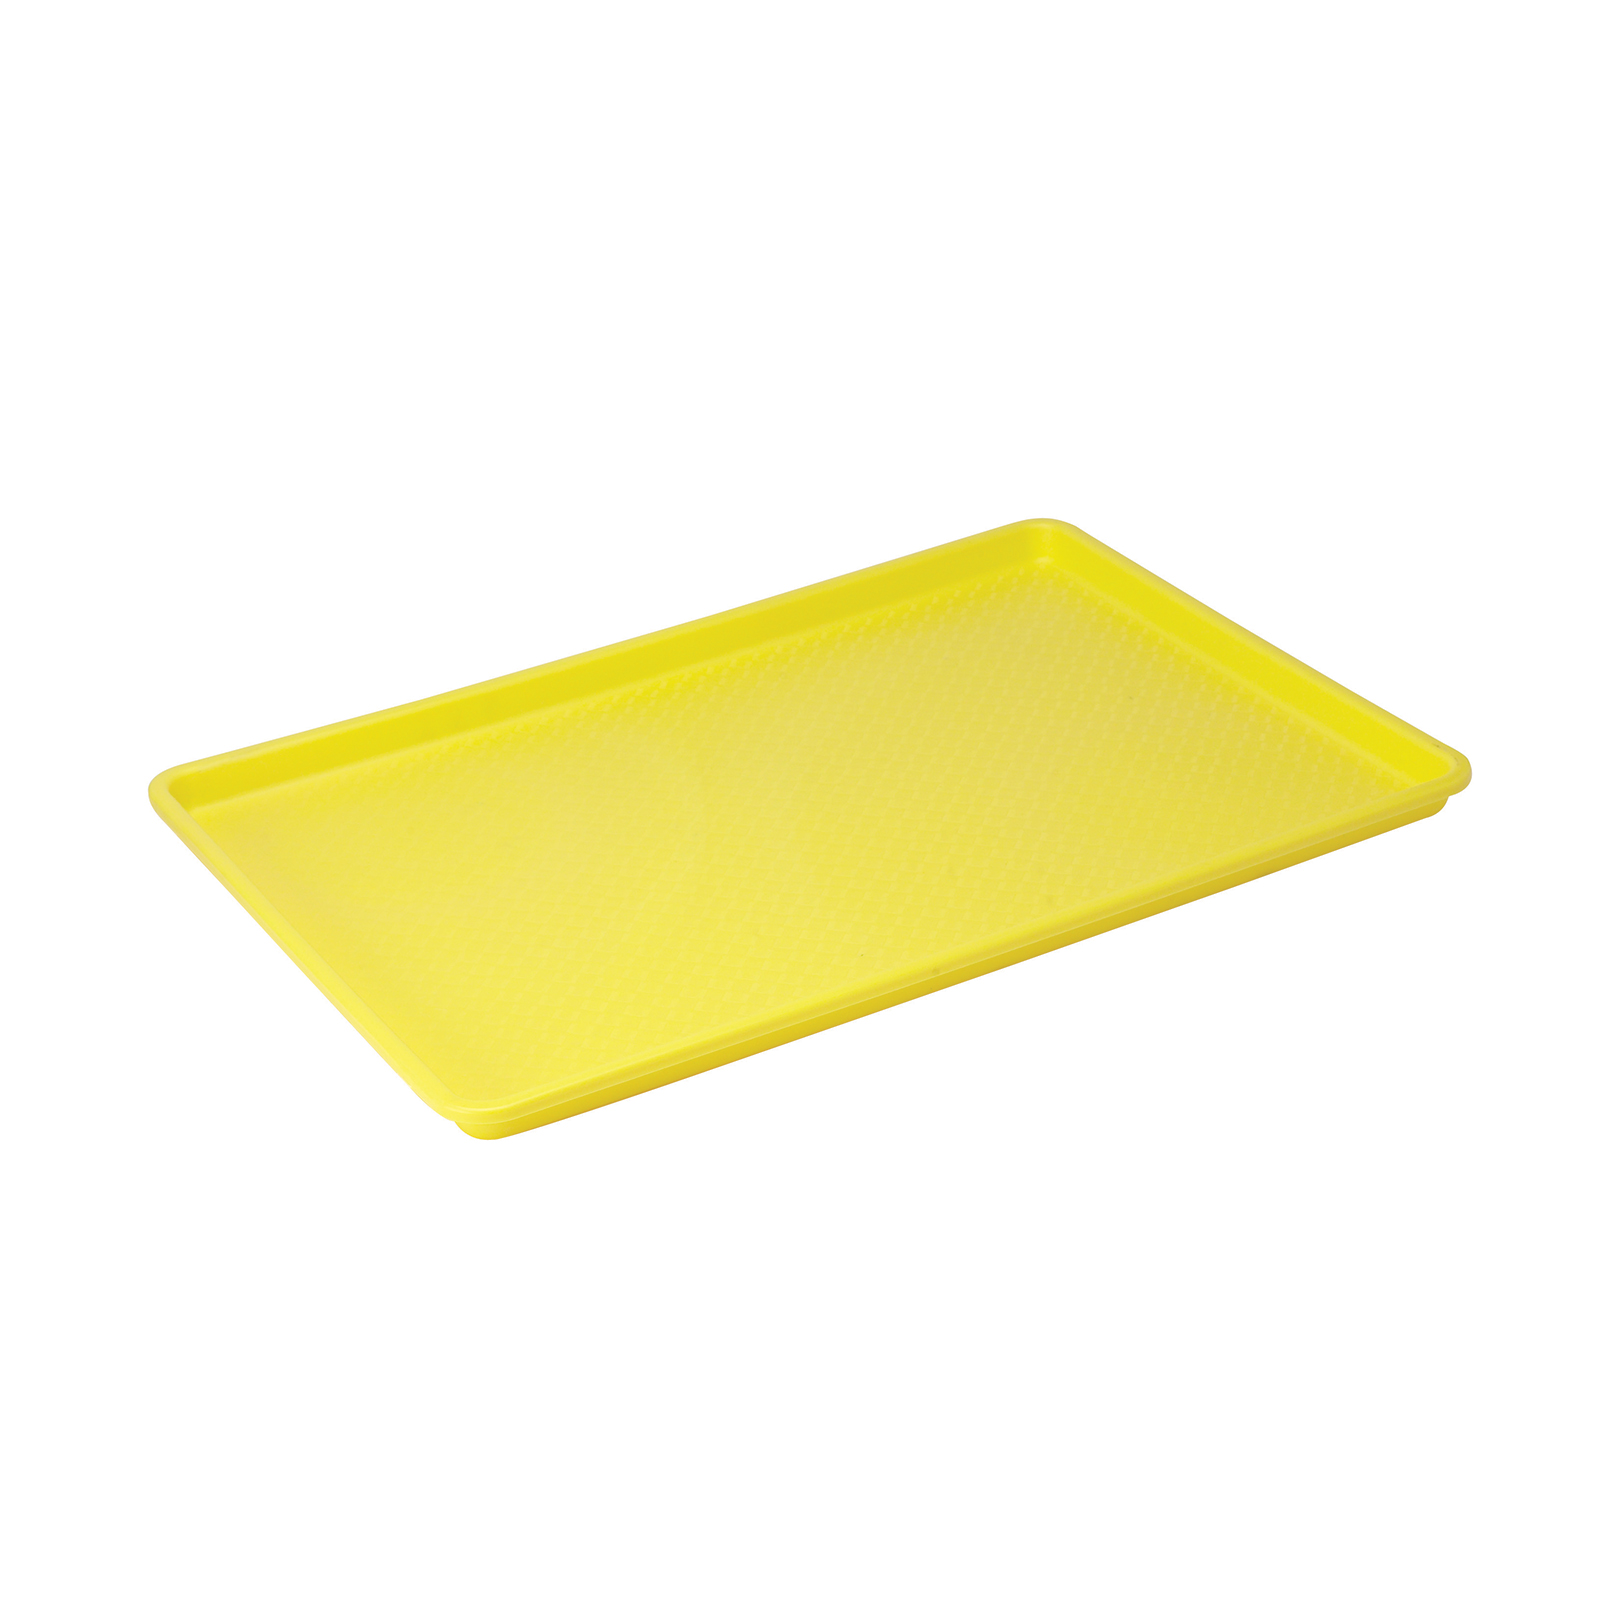 Winco FFT-1826YL tray, fast food